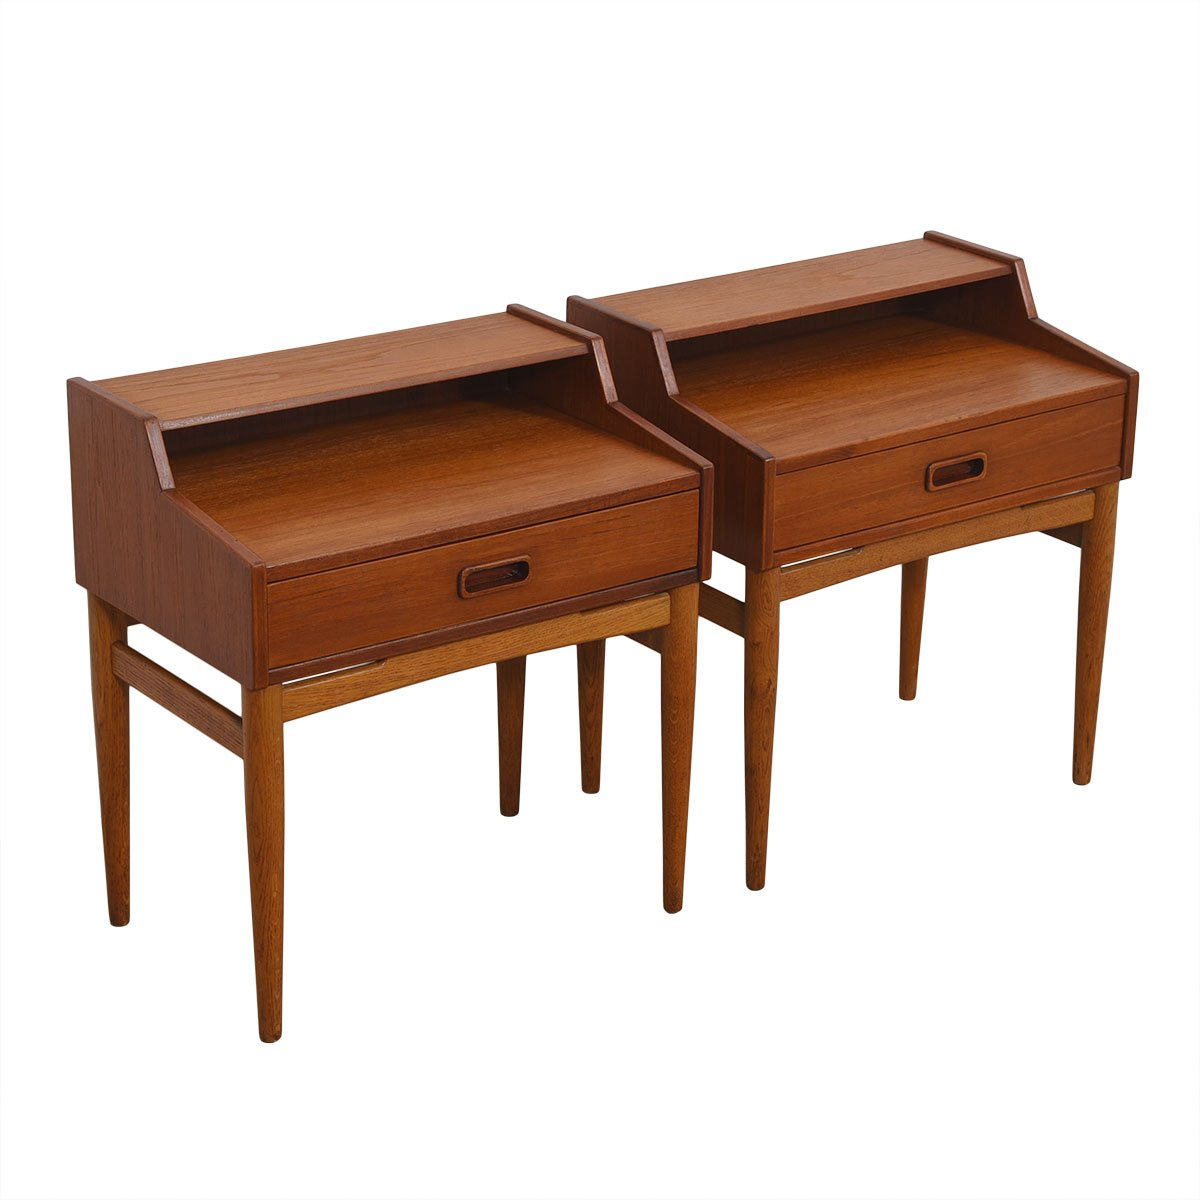 Rare Pair of Arne Hovmand-Olsen for Mogens Kold Teak Nightstands.